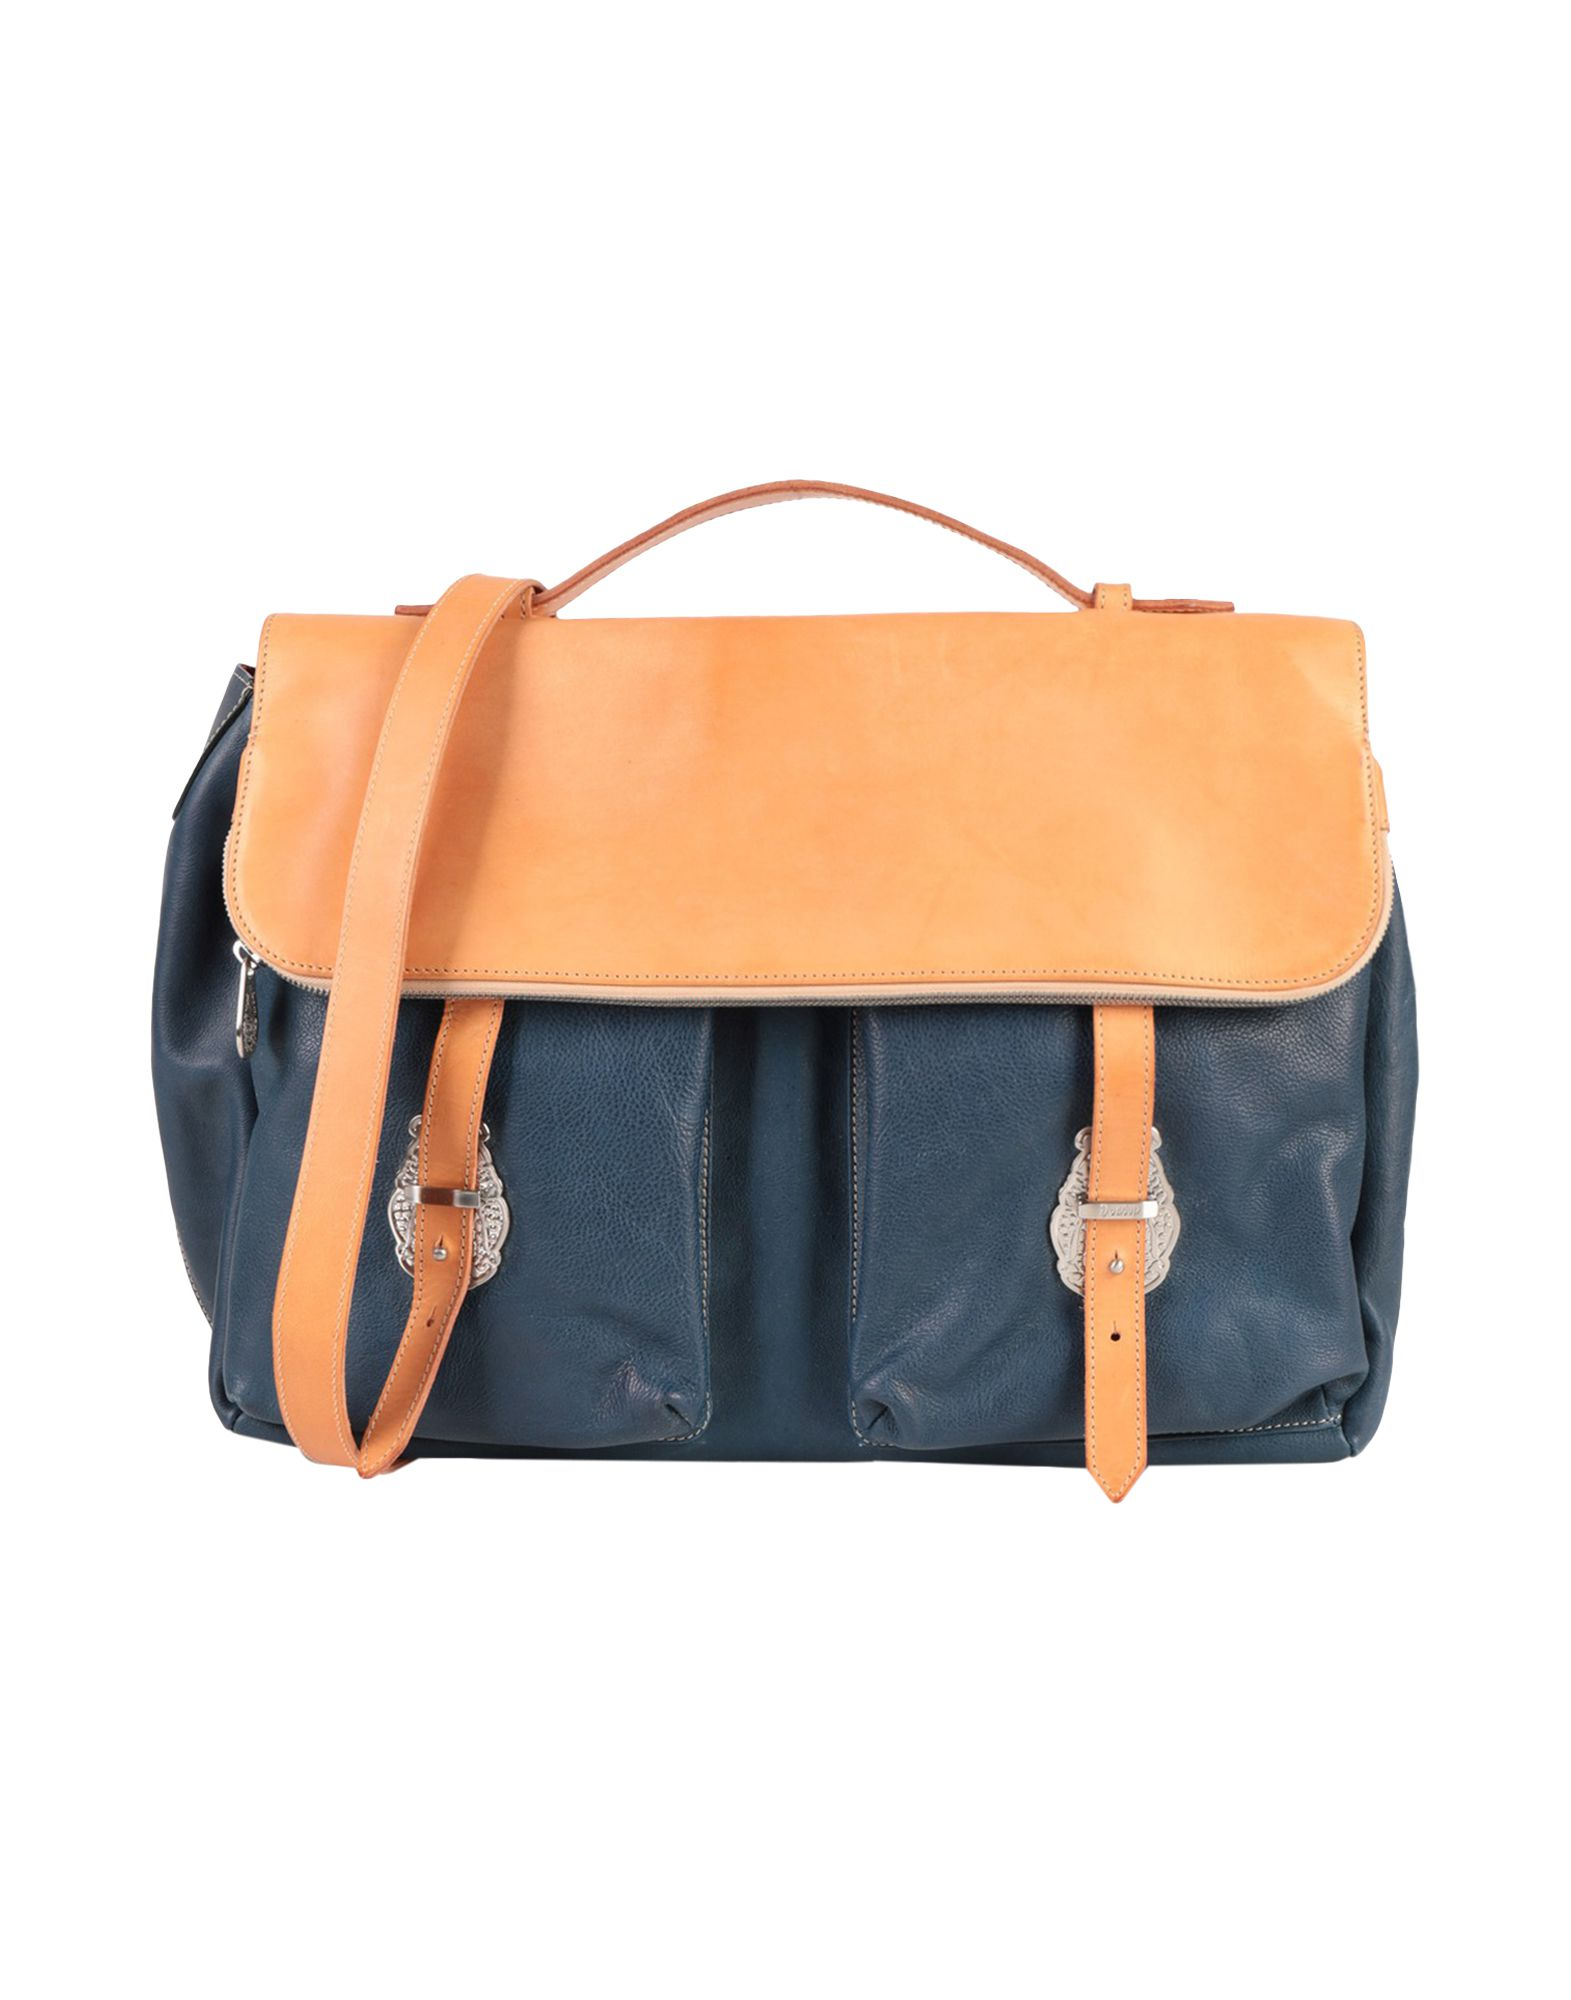 DONDUP Work Bags. leather, textured leather, maxi, logo, two-tone, framed closure, external pockets, internal pockets, fully lined, leather straps, stiff bottom, contains non-textile parts of animal origin. Soft Leather